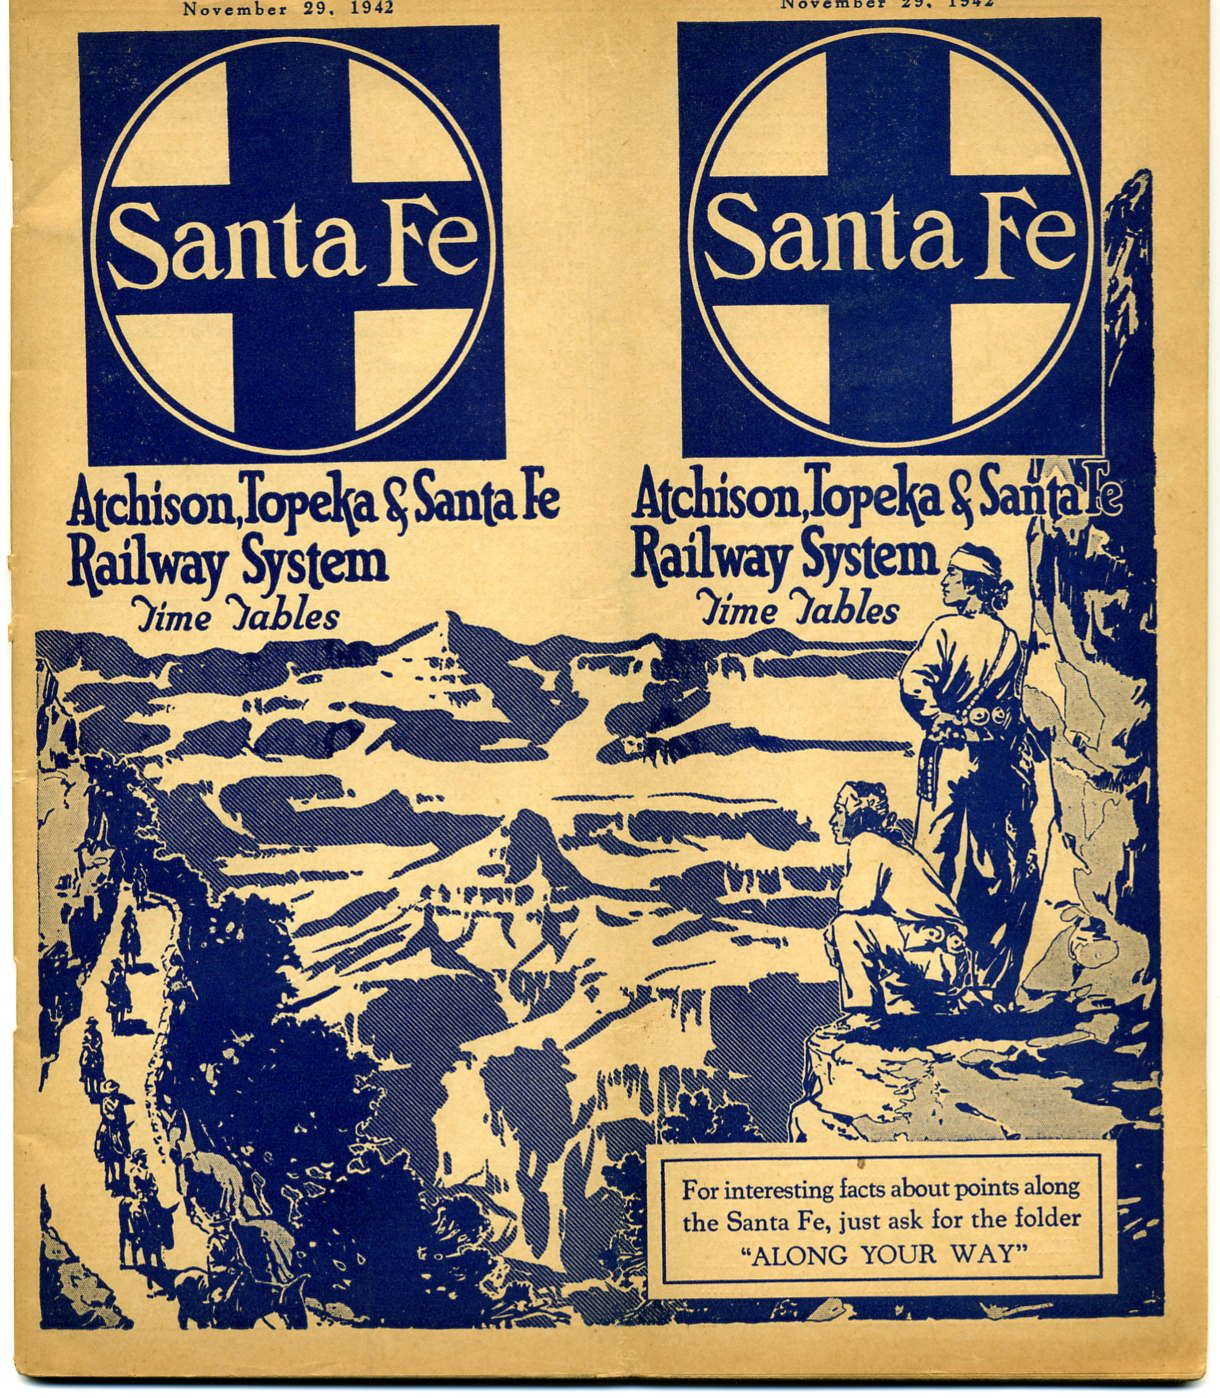 "Santa Fe Passenger Timetable Cover, November 29, 1942 - Atchison, Topeka & Santa Fe Railway System Time Tables, For interesting facts about points along the Santa Fe, just for the folder ""ALONG YOUR WAY"""